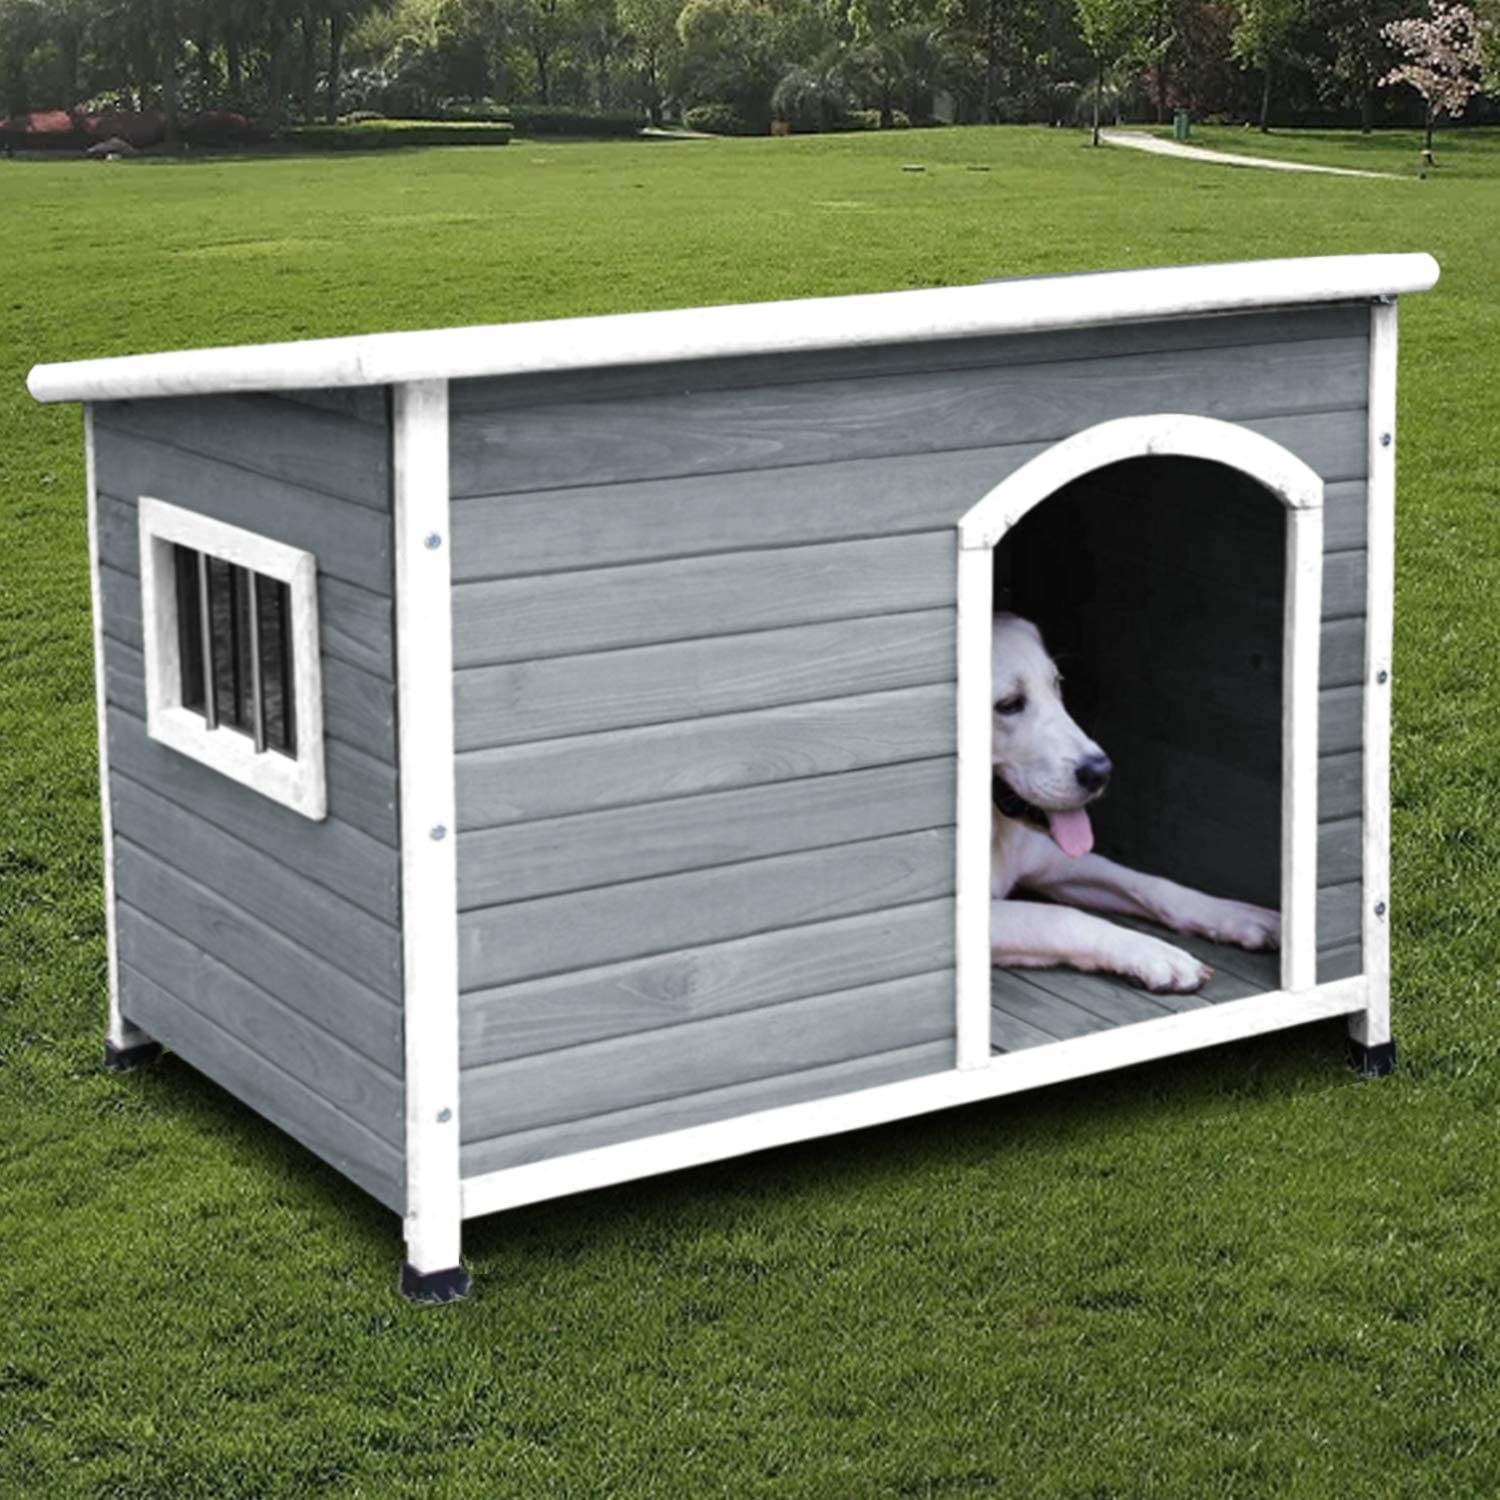 Amazon.com : ROCKEVER Dog Houses for Small Dogs and Puppies Outdoor Wood  Weatherproof Outside Wooden Puppy Houses Insulated Light Grey : Pet Supplies